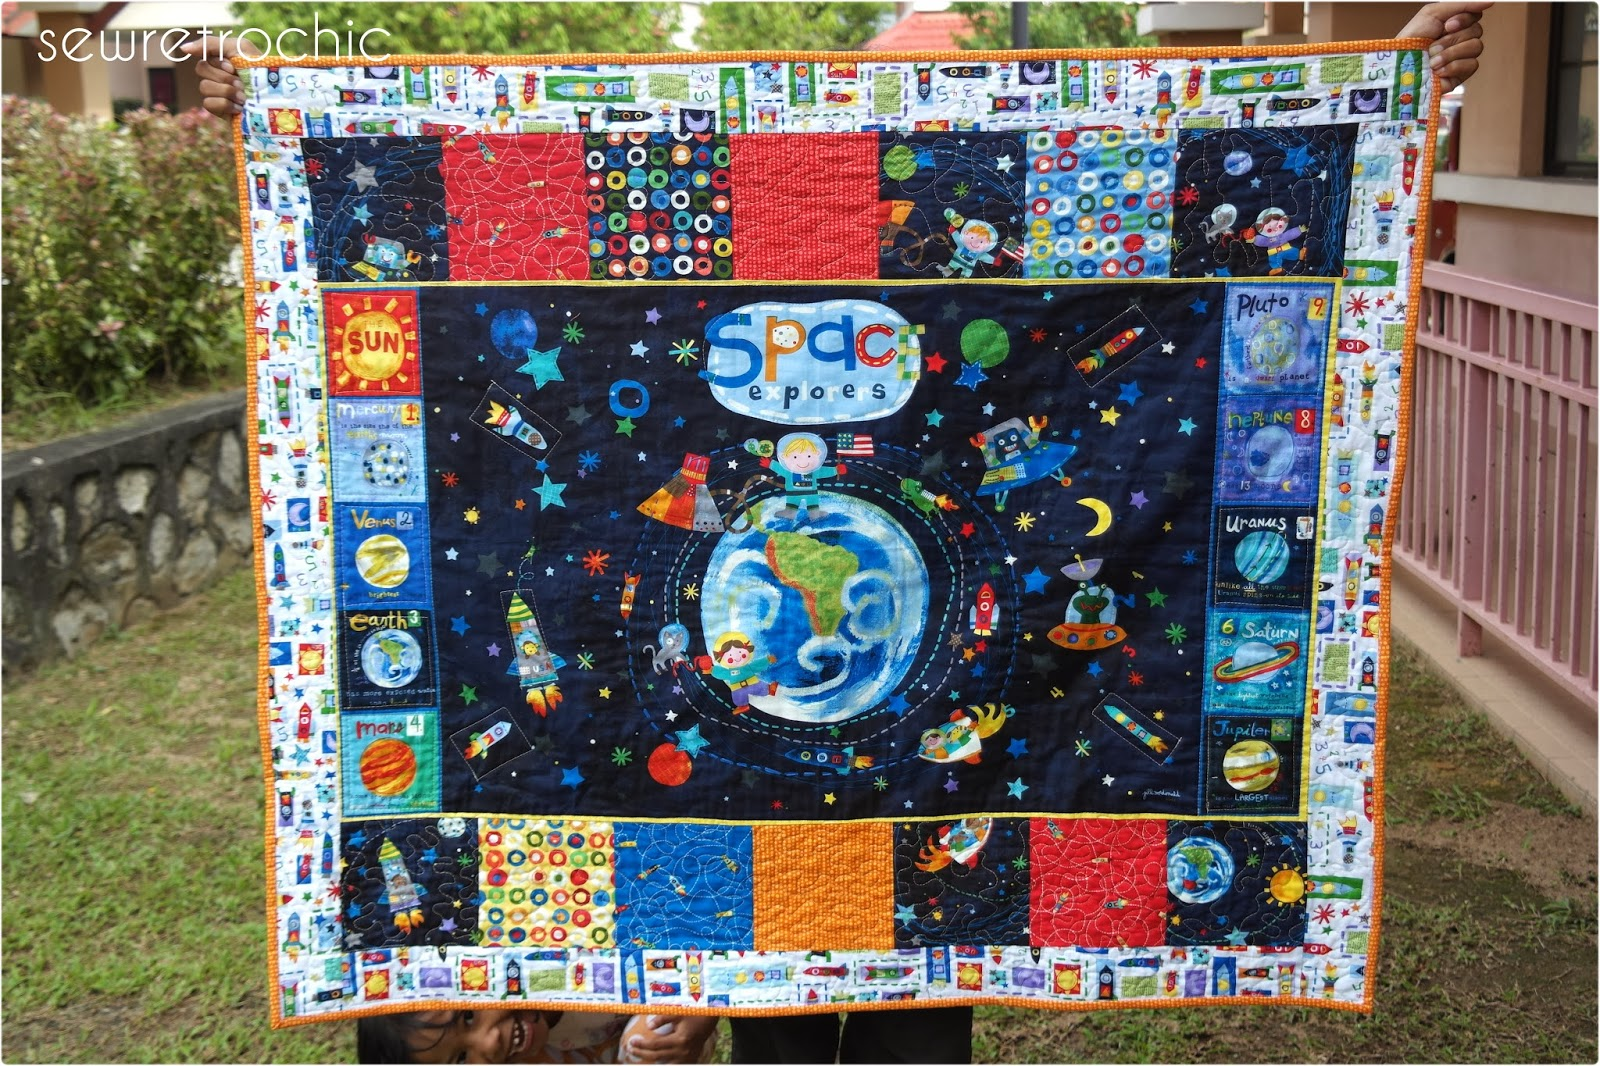 Sew retro chic an astro boy quilt for baby harith for Outer space themed fabric